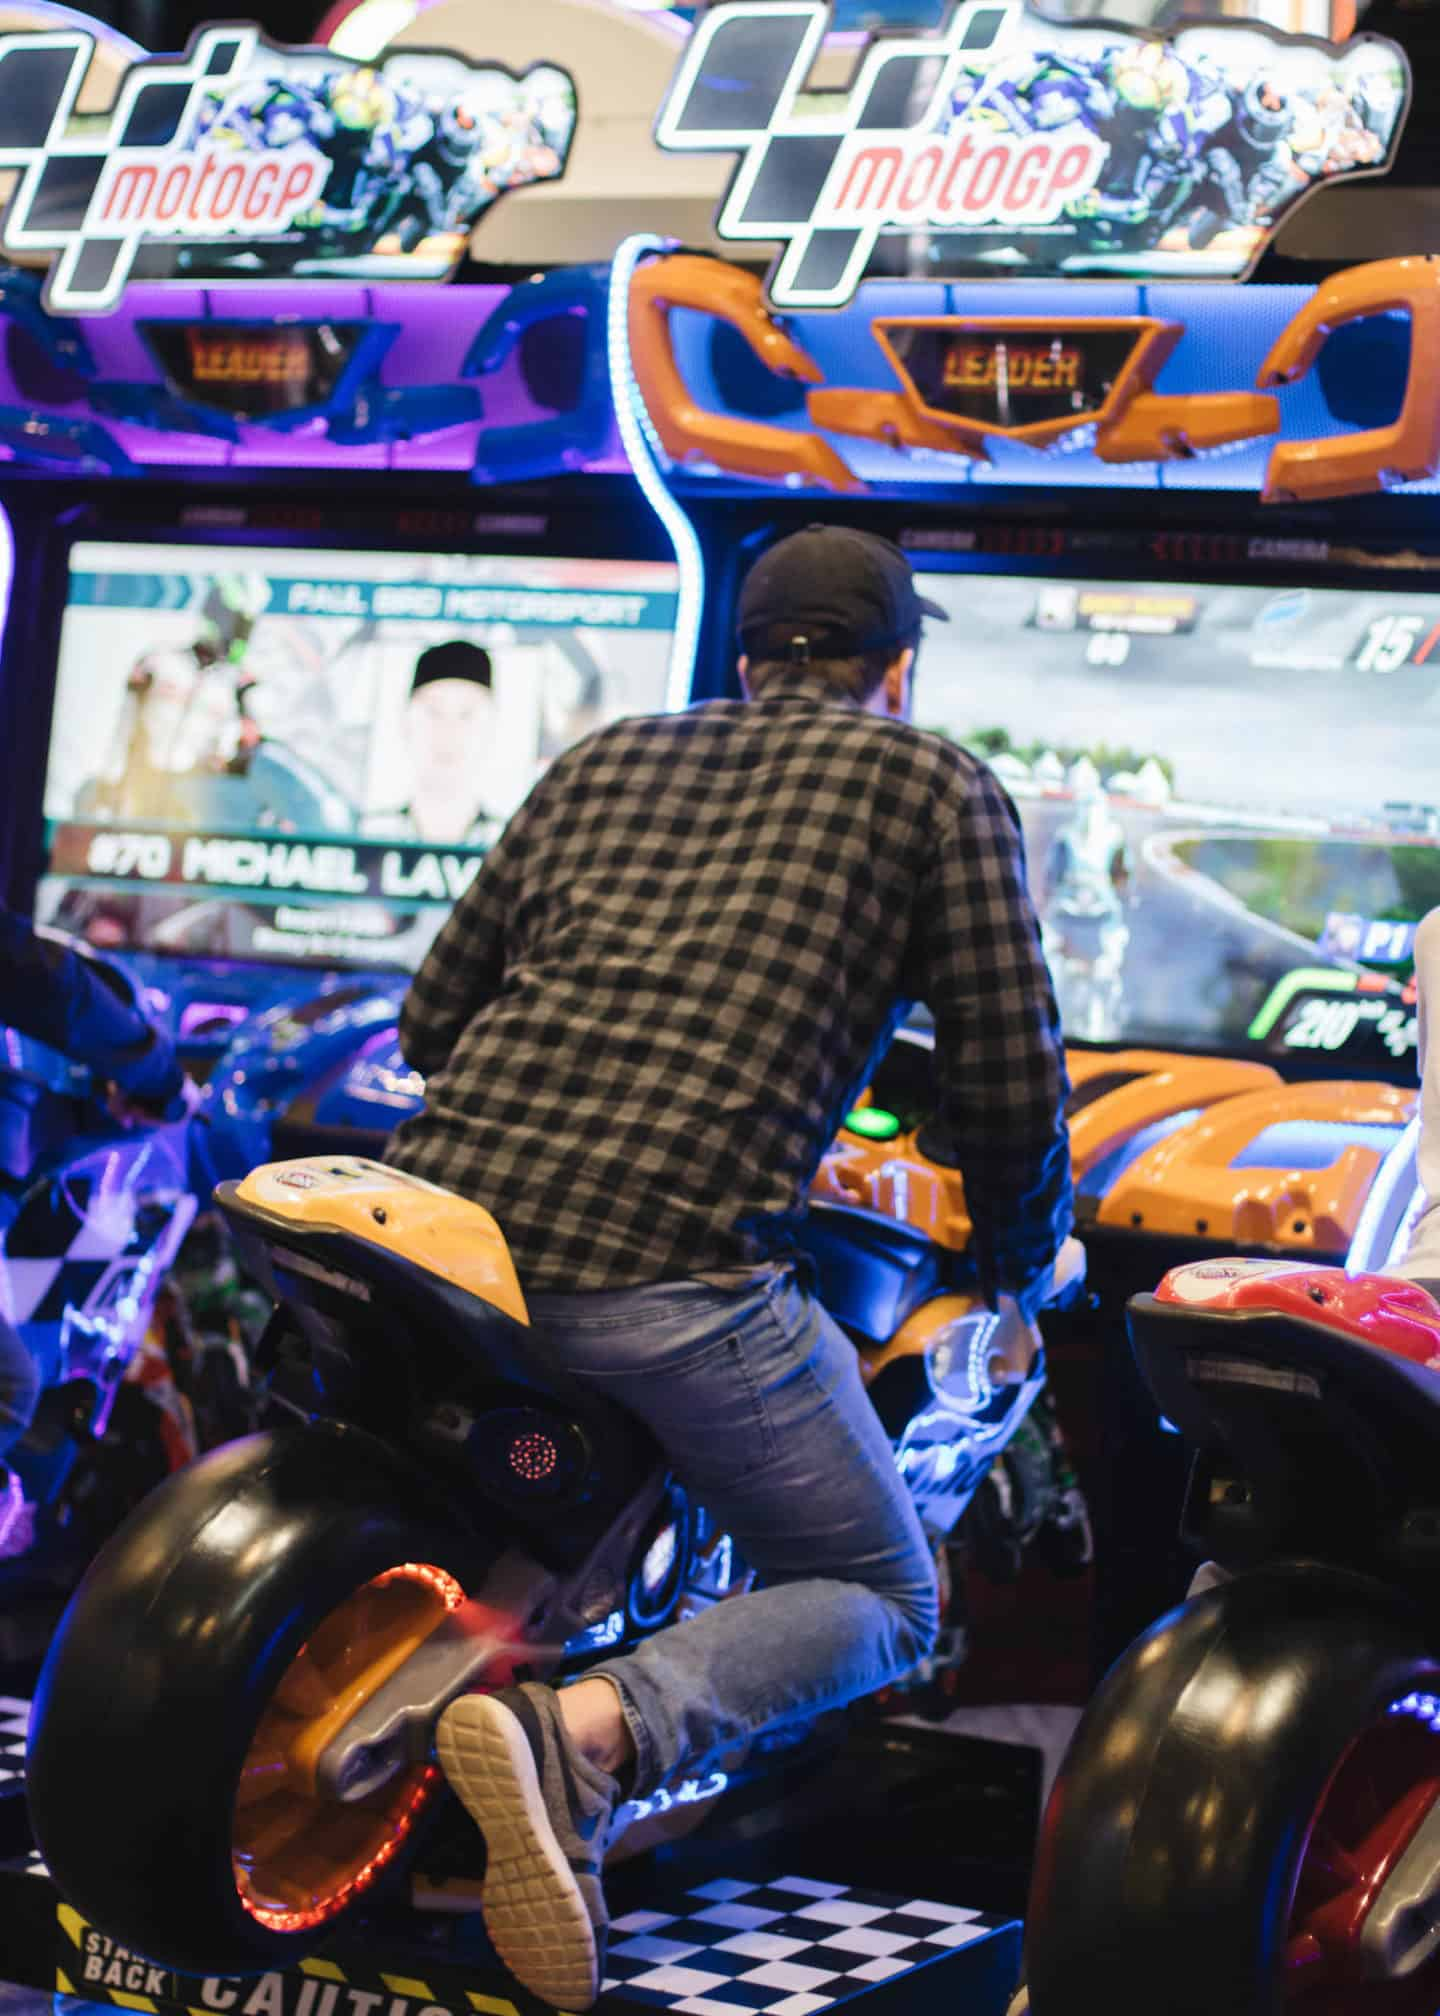 Motorcycle racing game at The Rec Room Toronto